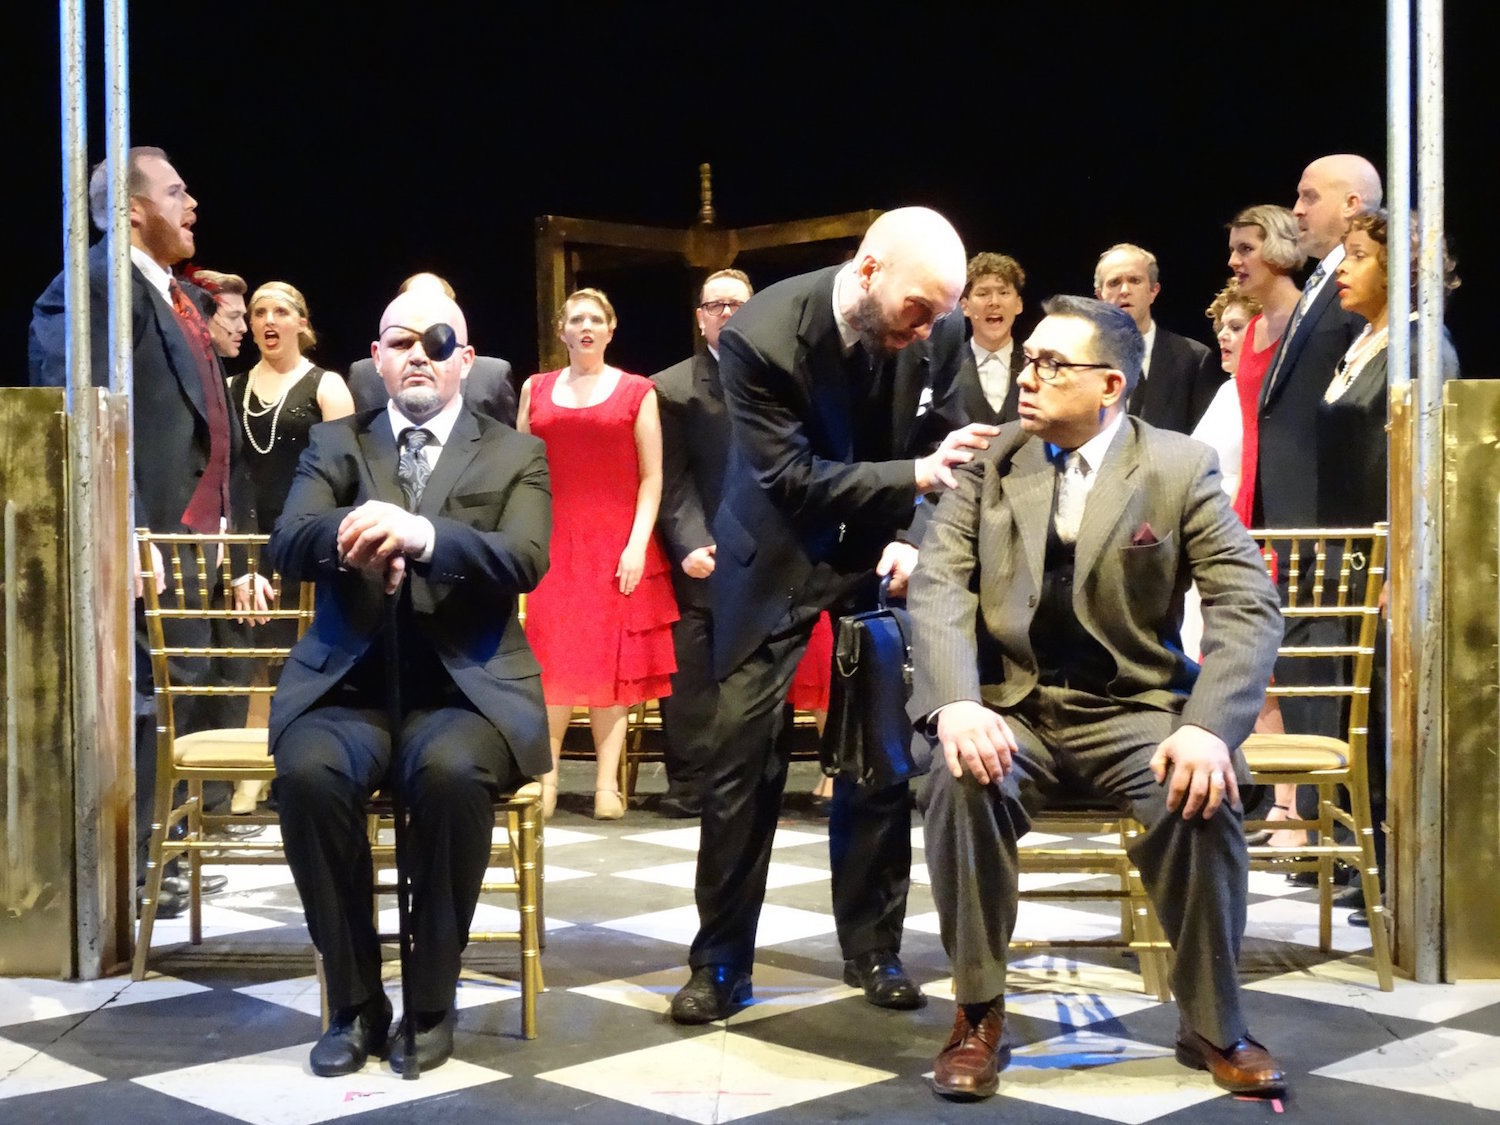 BWW Review: GRAND HOTEL at Barn Players